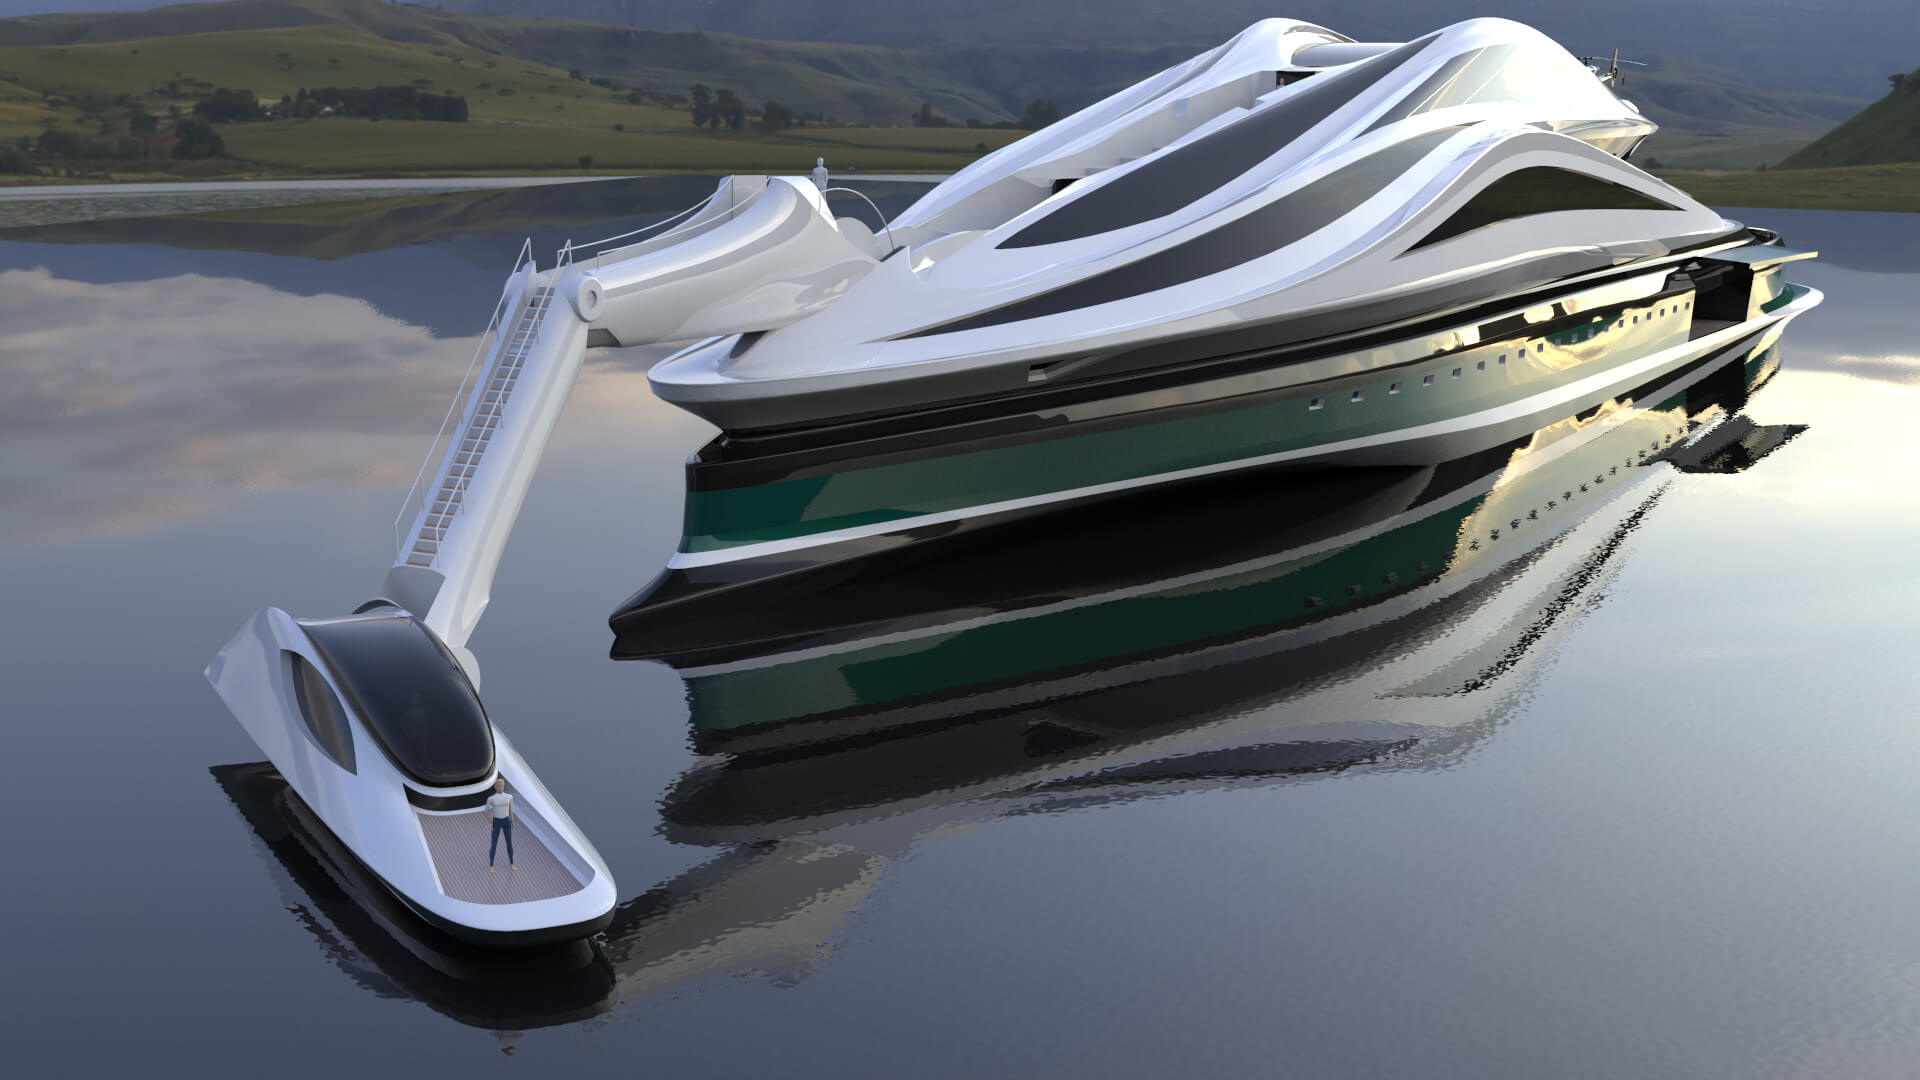 The cockpit can also be disconnected and used as an auxiliary boat | Avanguardia by Lazzarini Design Studio | STIRworld